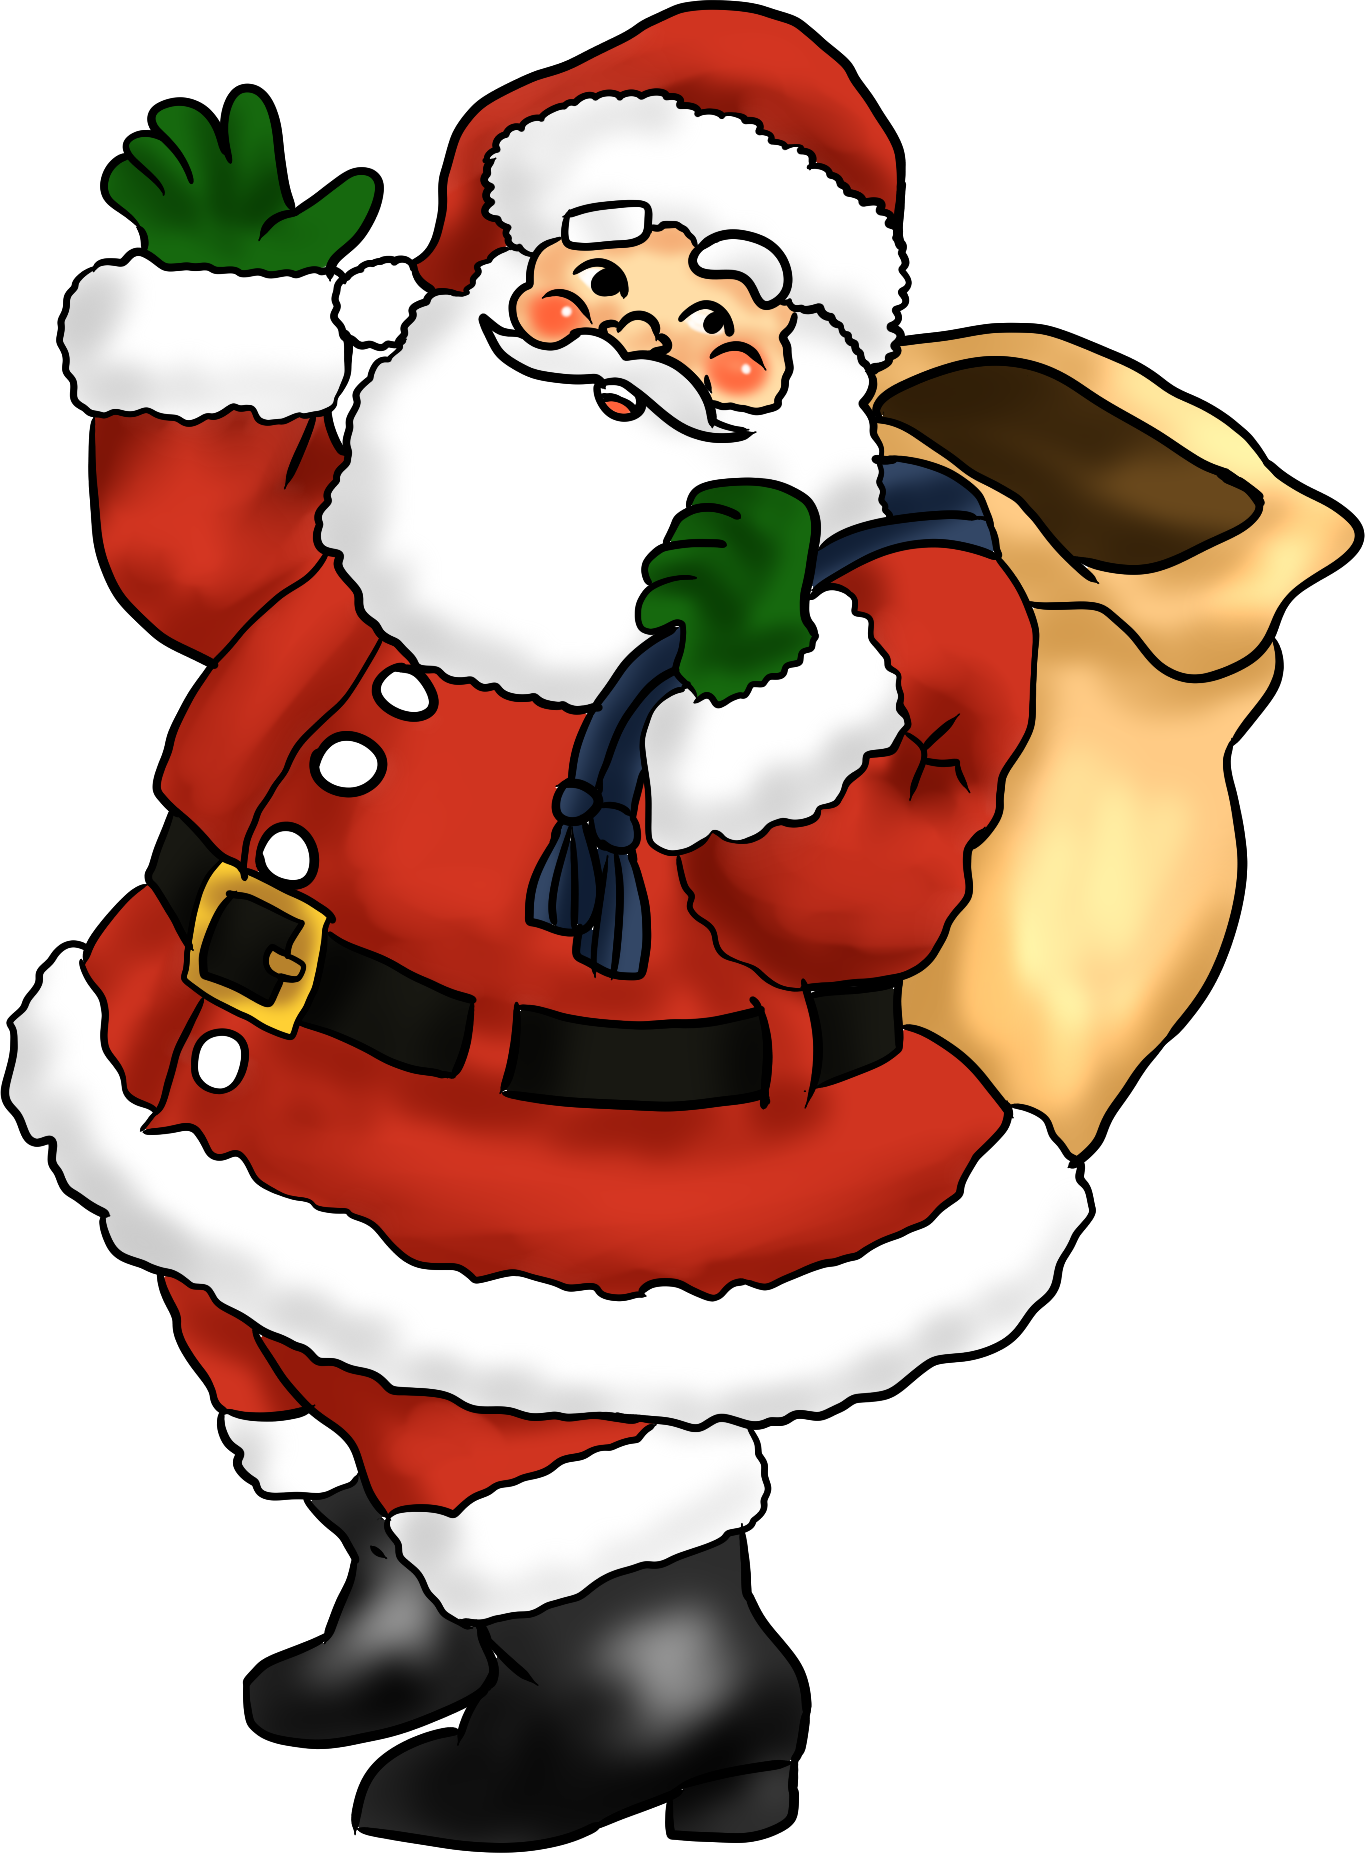 2016 clipart santa claus. Index of images newsletter